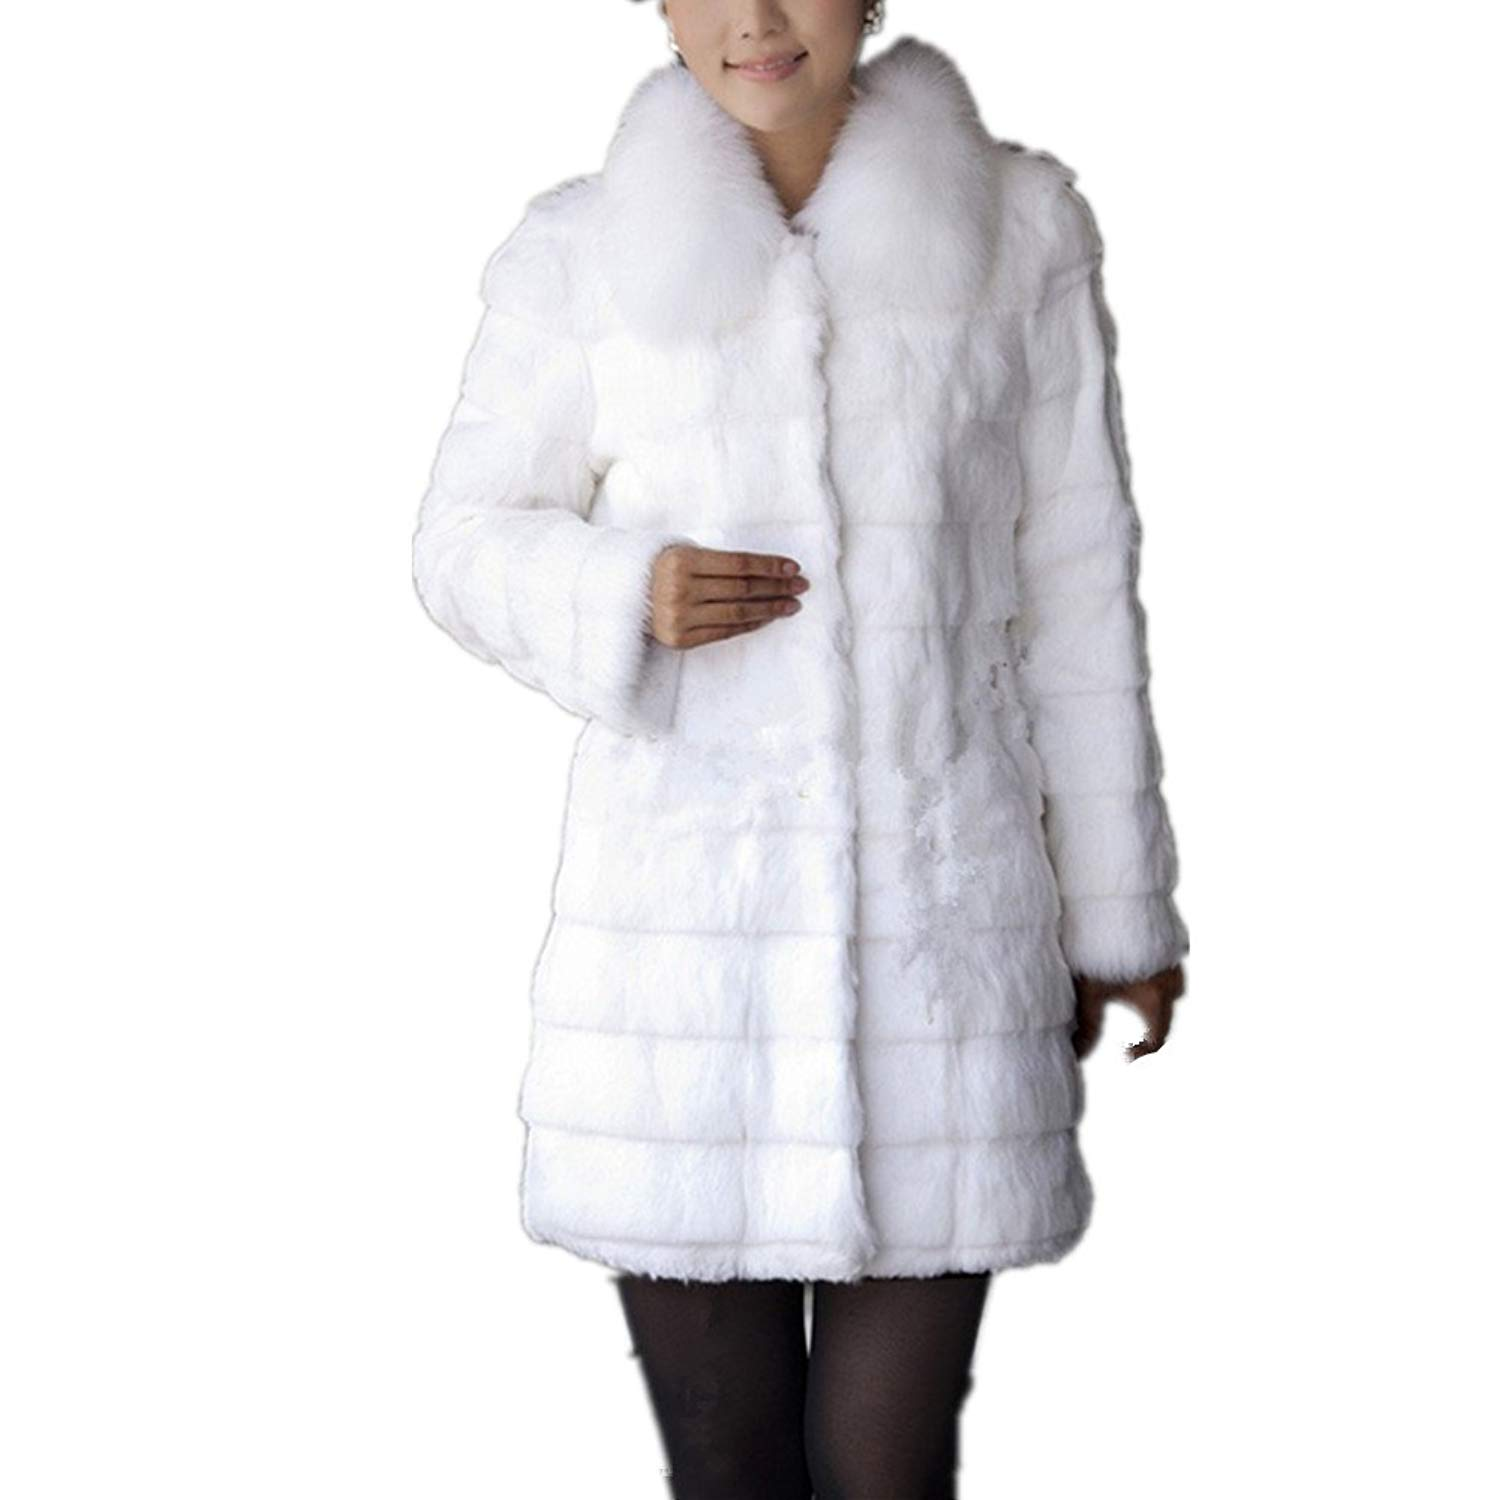 Lisa Colly Fashion Women Winter Coat Warm Faux Fur Coat Outerwear Long Fur Collar Casual Thick Jacket Coat